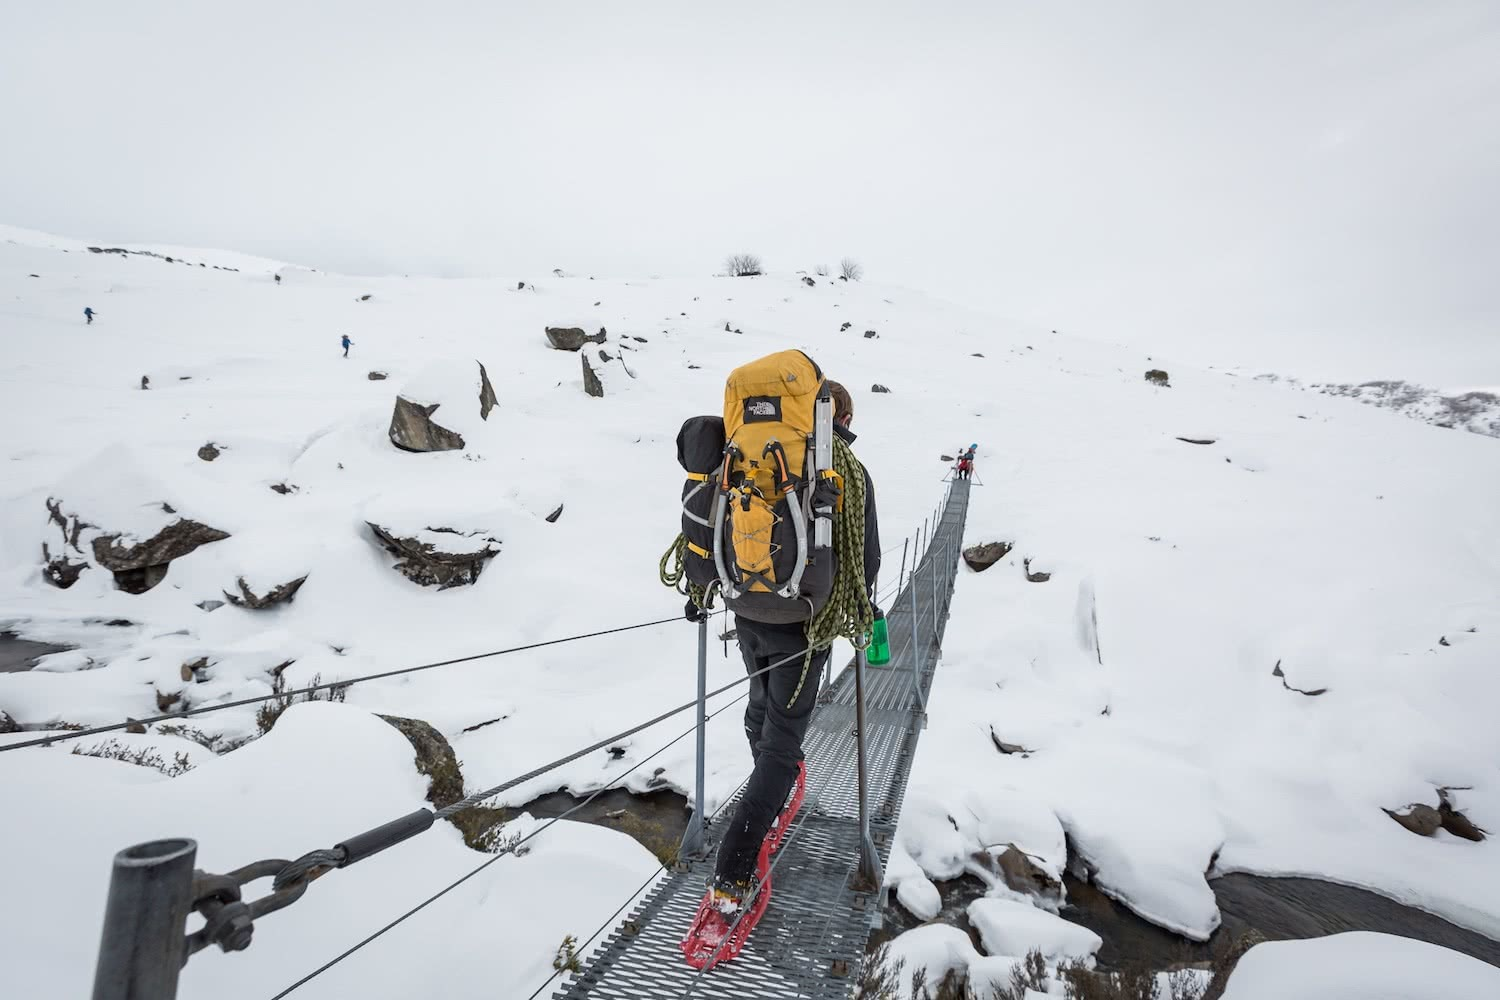 nathan mcneil, ice climbing, blue lake, south rams head, snowshoeing, ice climbing, Kosciuszko national park, the north face